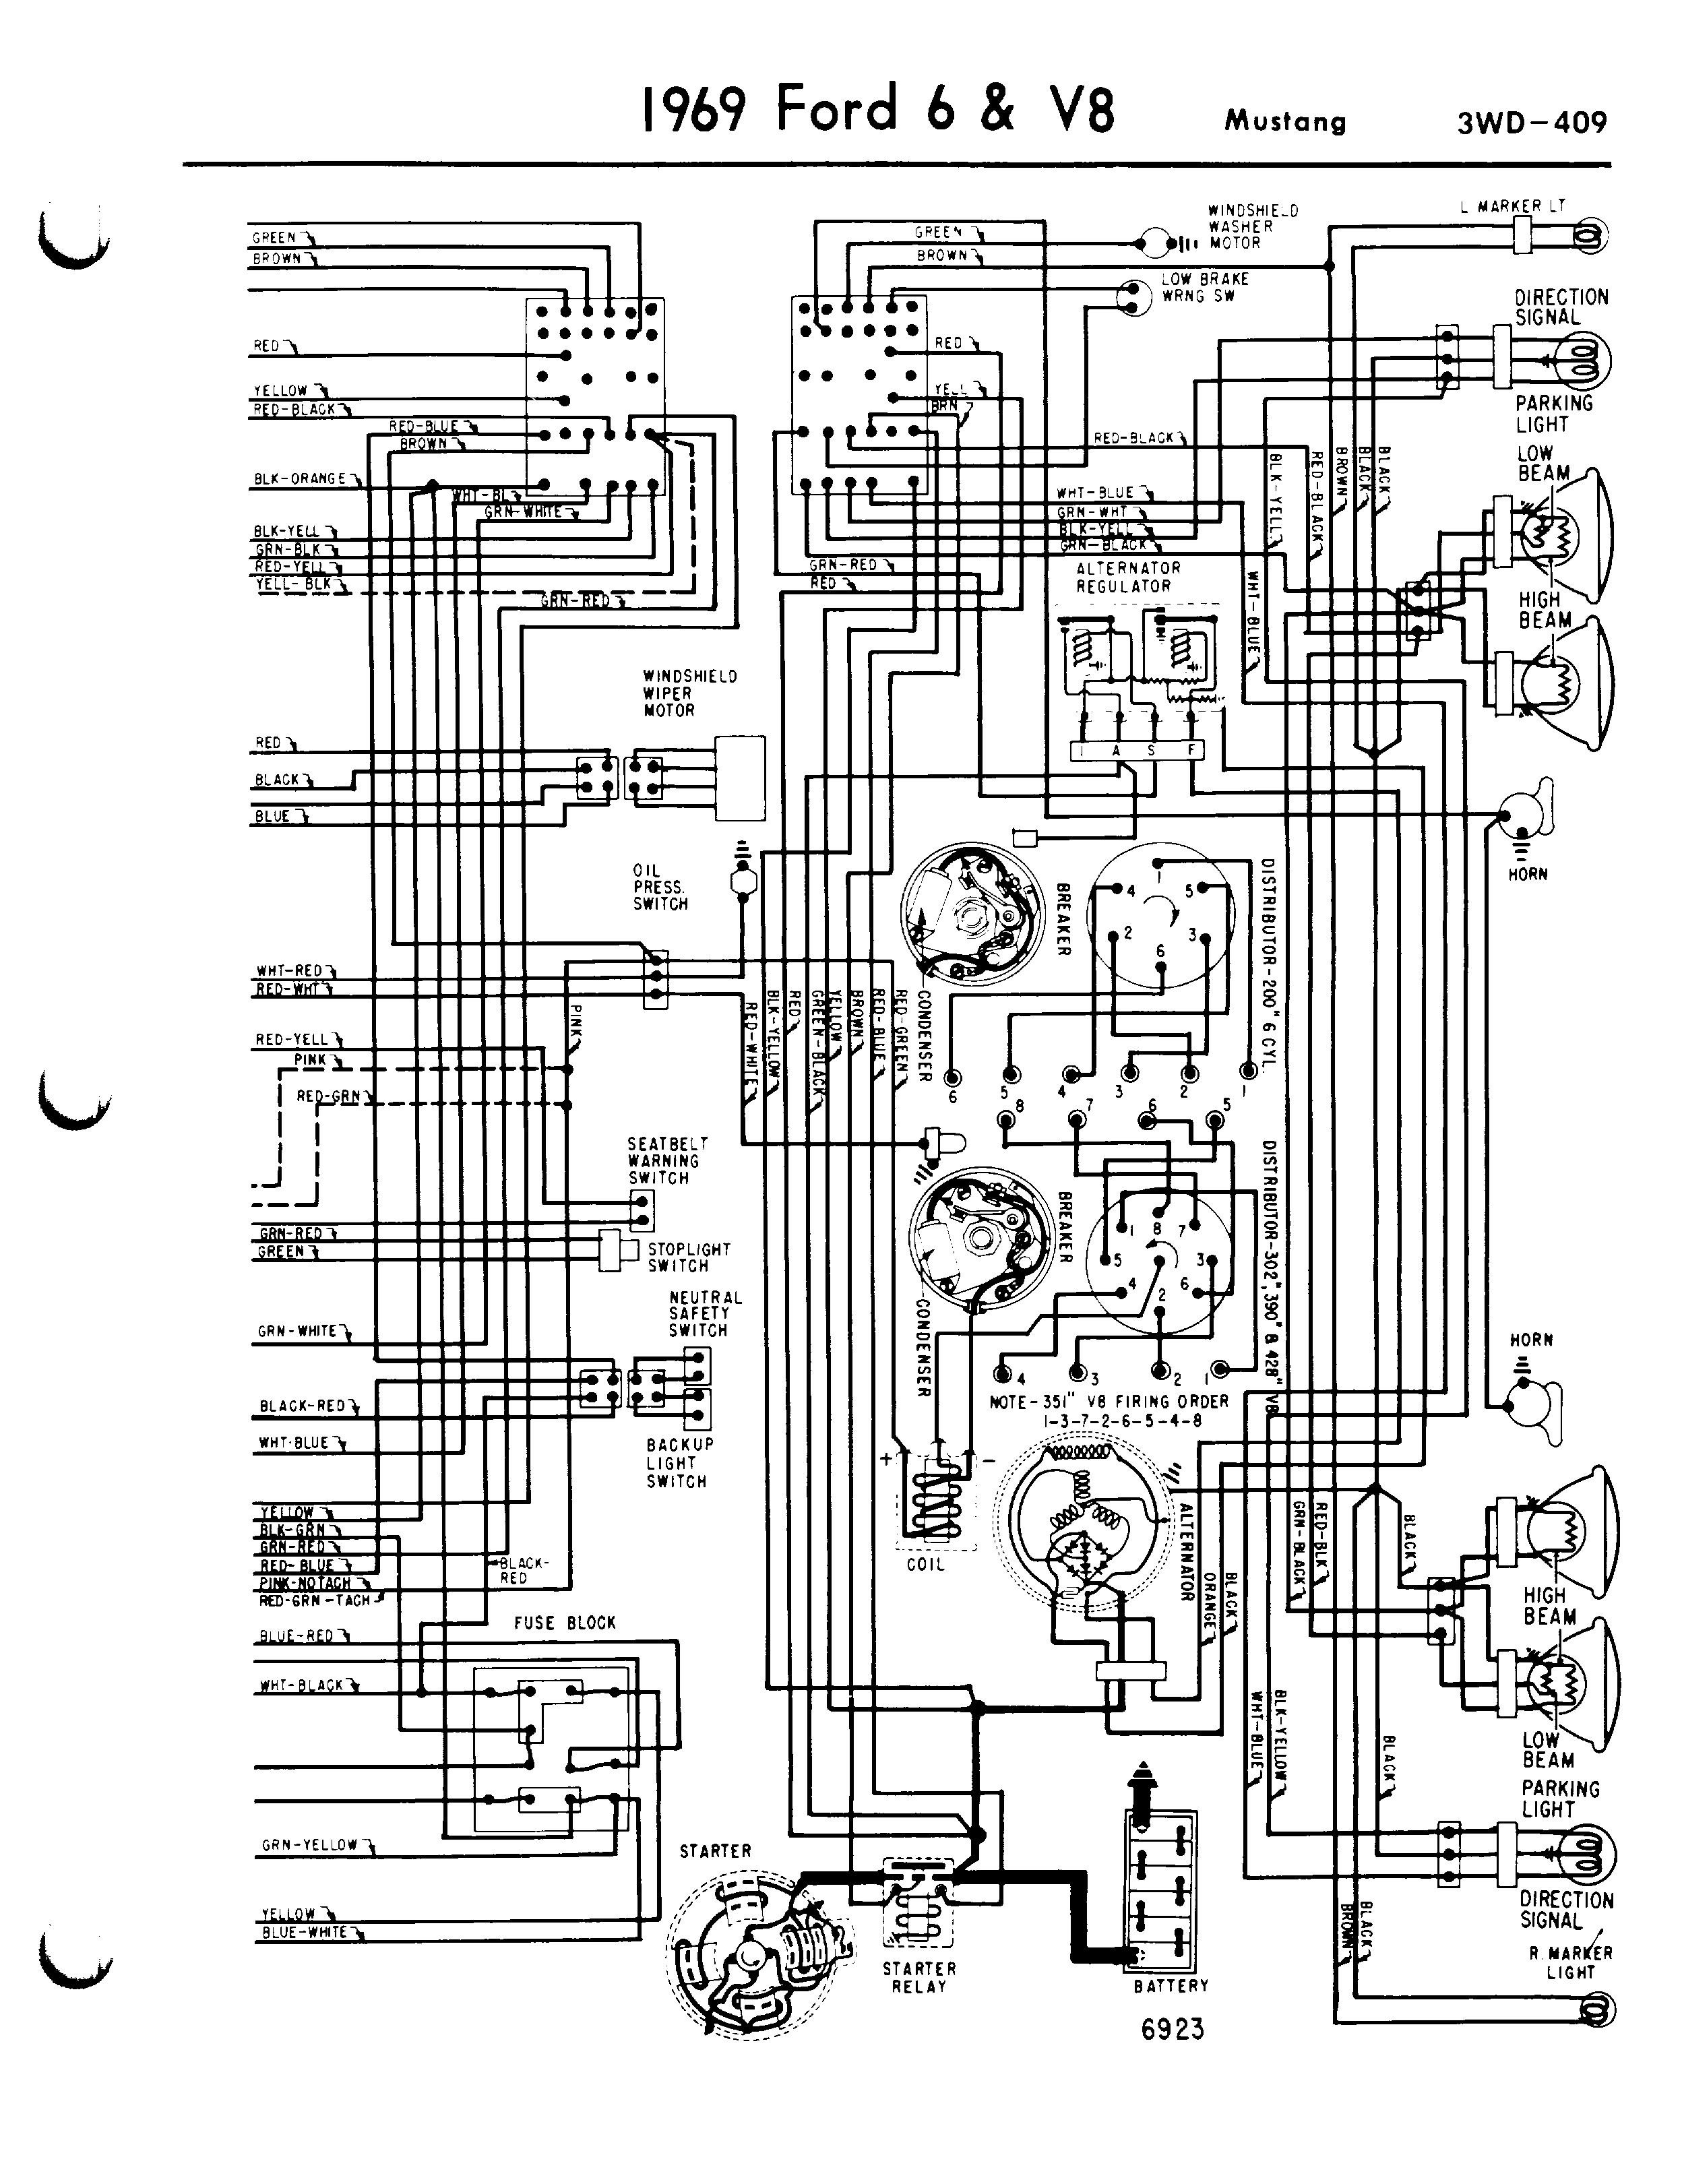 2000 Mustang Engine Diagram Wiring Diagram 1966 ford Mustang 6 V8 3wd 235 Schematic for Alluring Of 2000 Mustang Engine Diagram